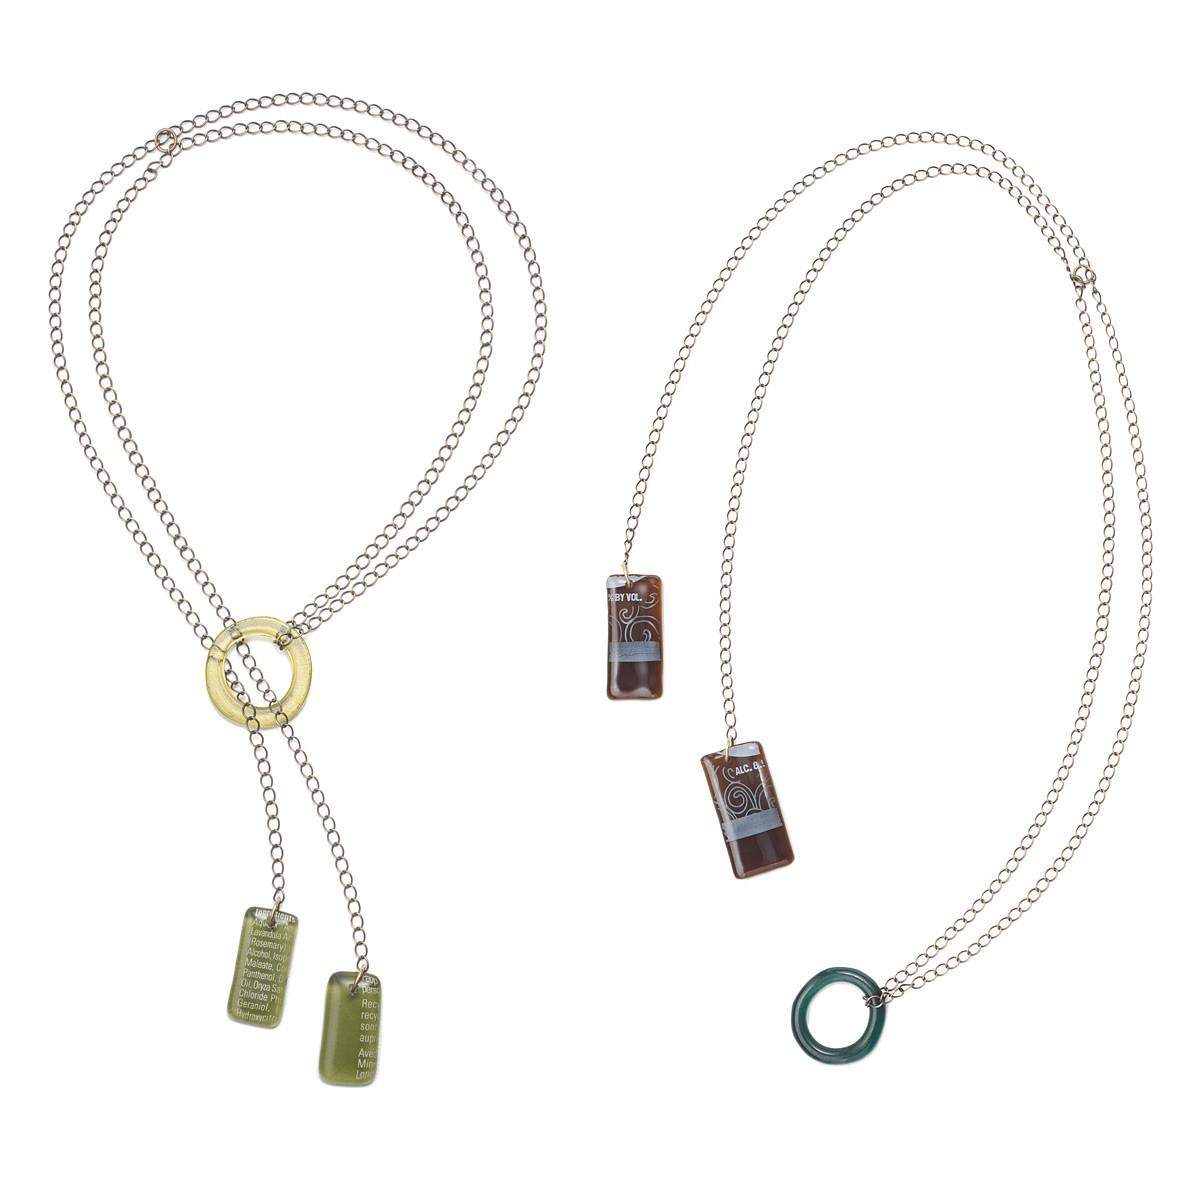 Recycled Glass Lariat Necklace Jewelry Smart